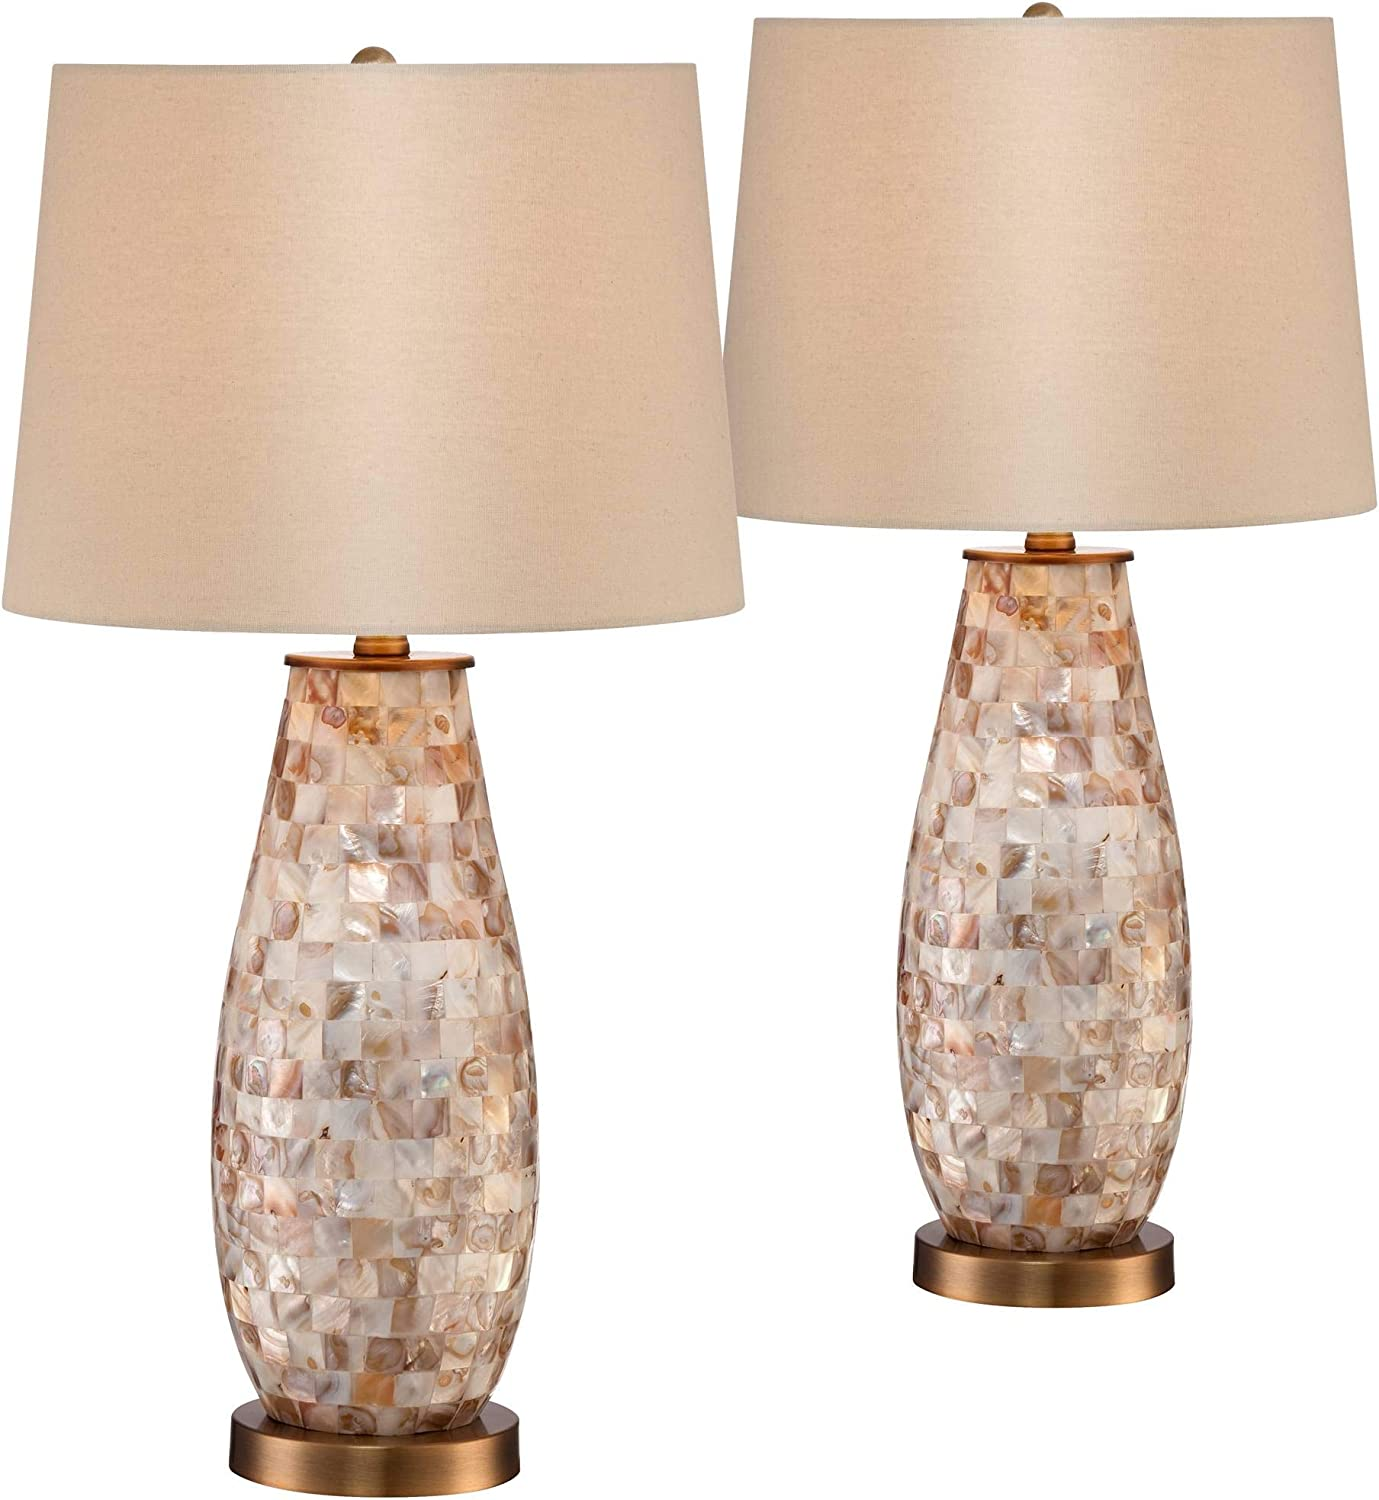 Kylie Country Cottage Coastal Table Lamps Set Of 2 Mother Of Pearl Tile Vase Beige Fabric Drum Shade Decor For Living Room Bedroom House Bedside Nightstand Home Office Family Regency Hill